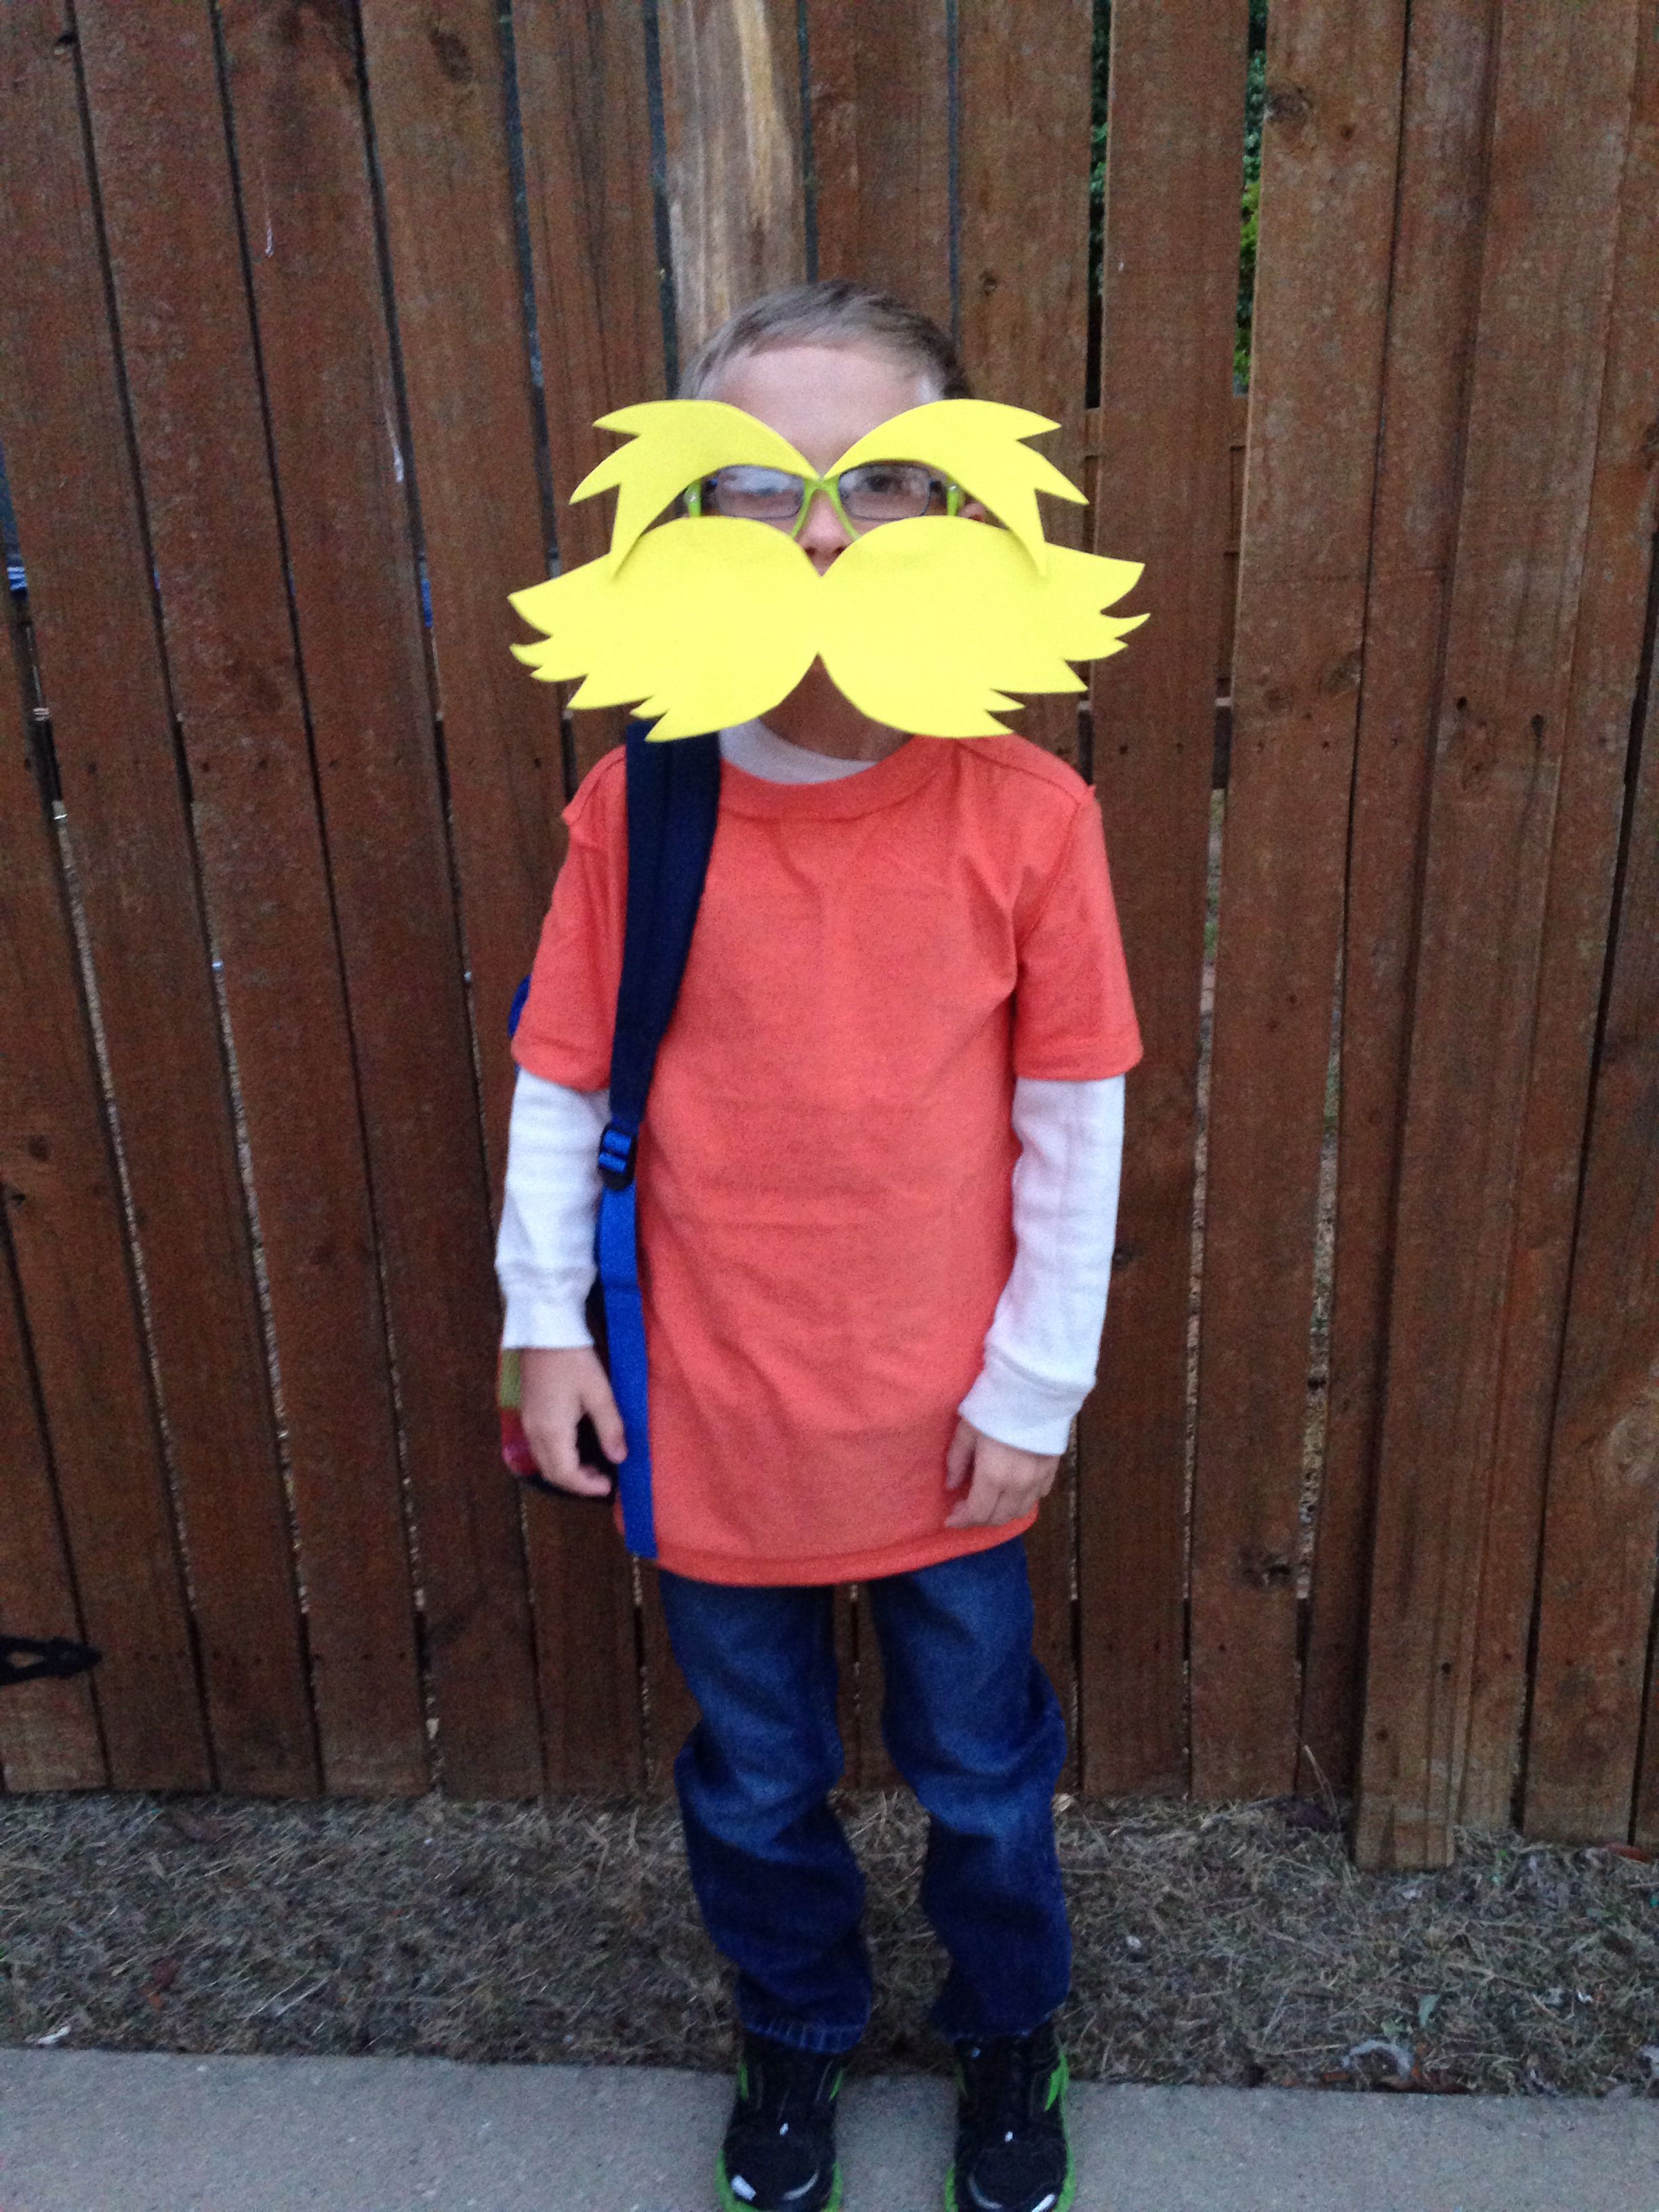 Lorax costume for national book day crafty stuff pinterest diy costumes lorax costume for national book day solutioingenieria Gallery